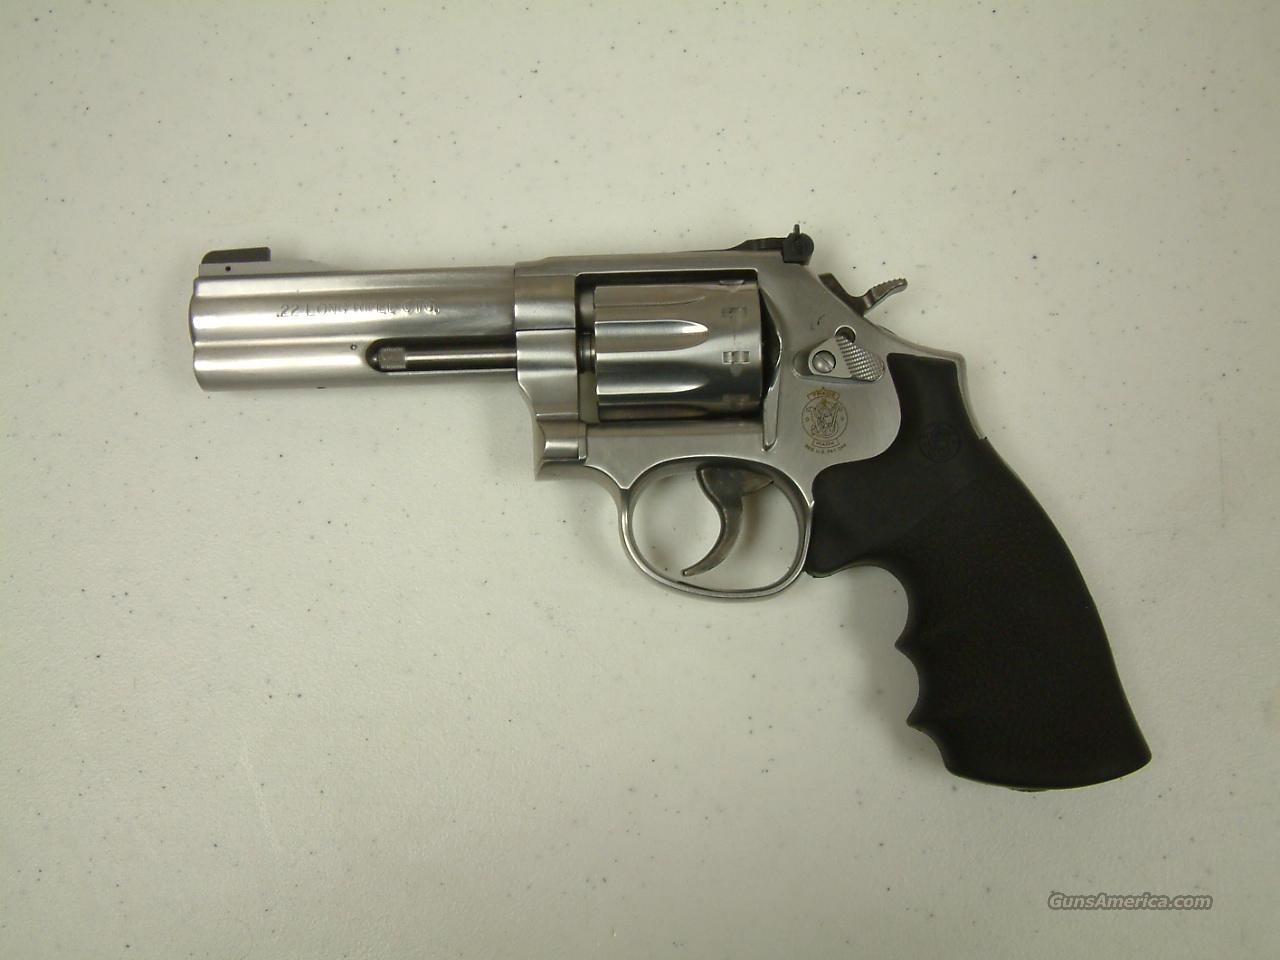 Smith&Wesson 617-6  Guns > Pistols > Smith & Wesson Revolvers > Full Frame Revolver